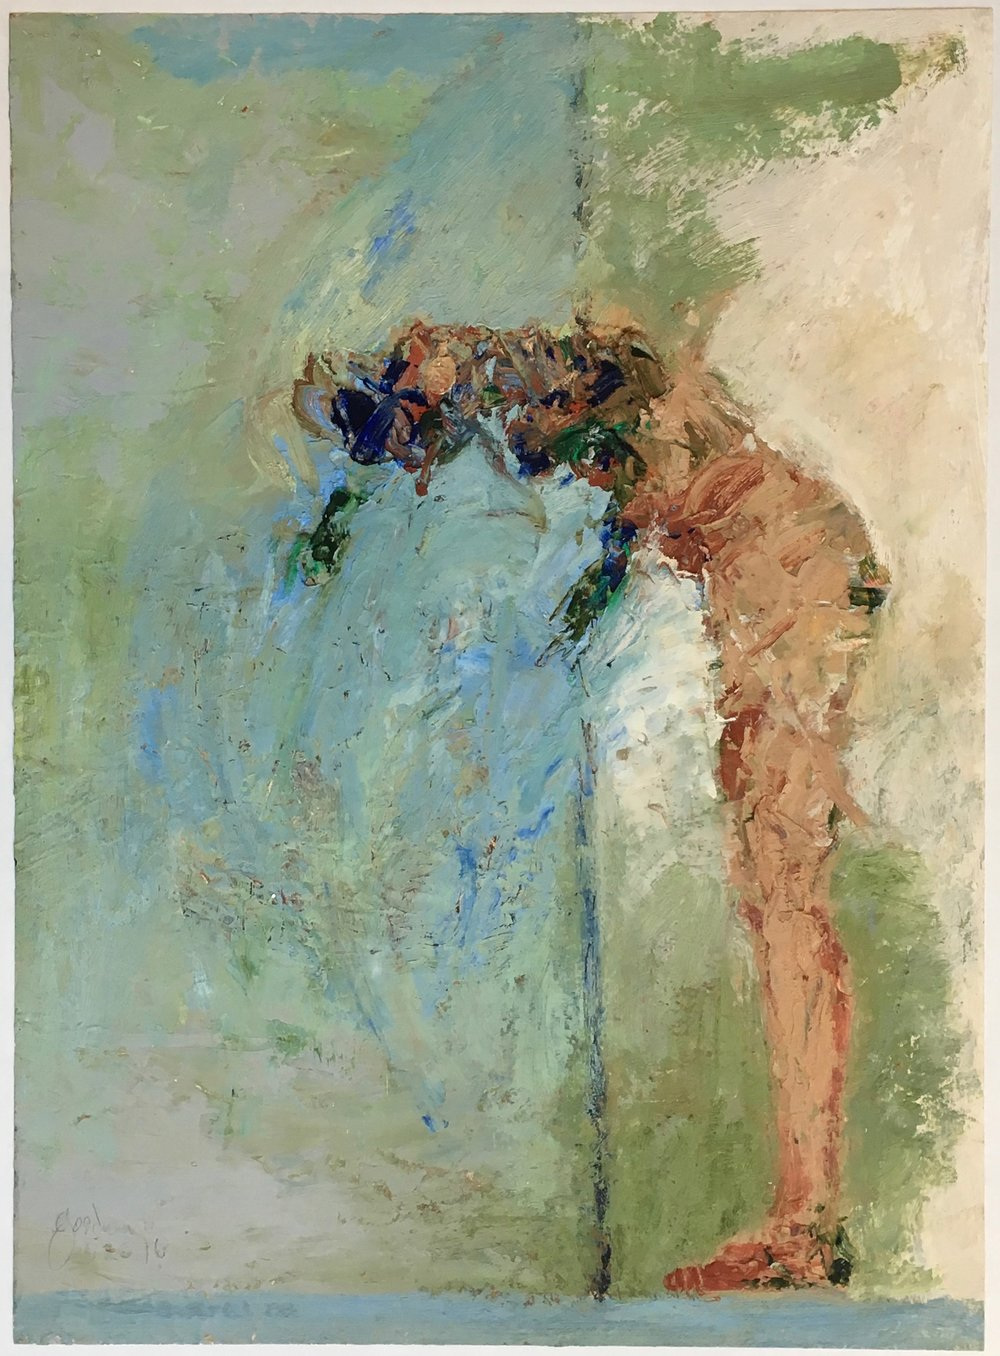 John Goodman     Bowing Figure #1,   2016 Oil & Mixed Media on Panel 30 x 22 inches       For More Information     Artist Biography, Exhibitions & Collections